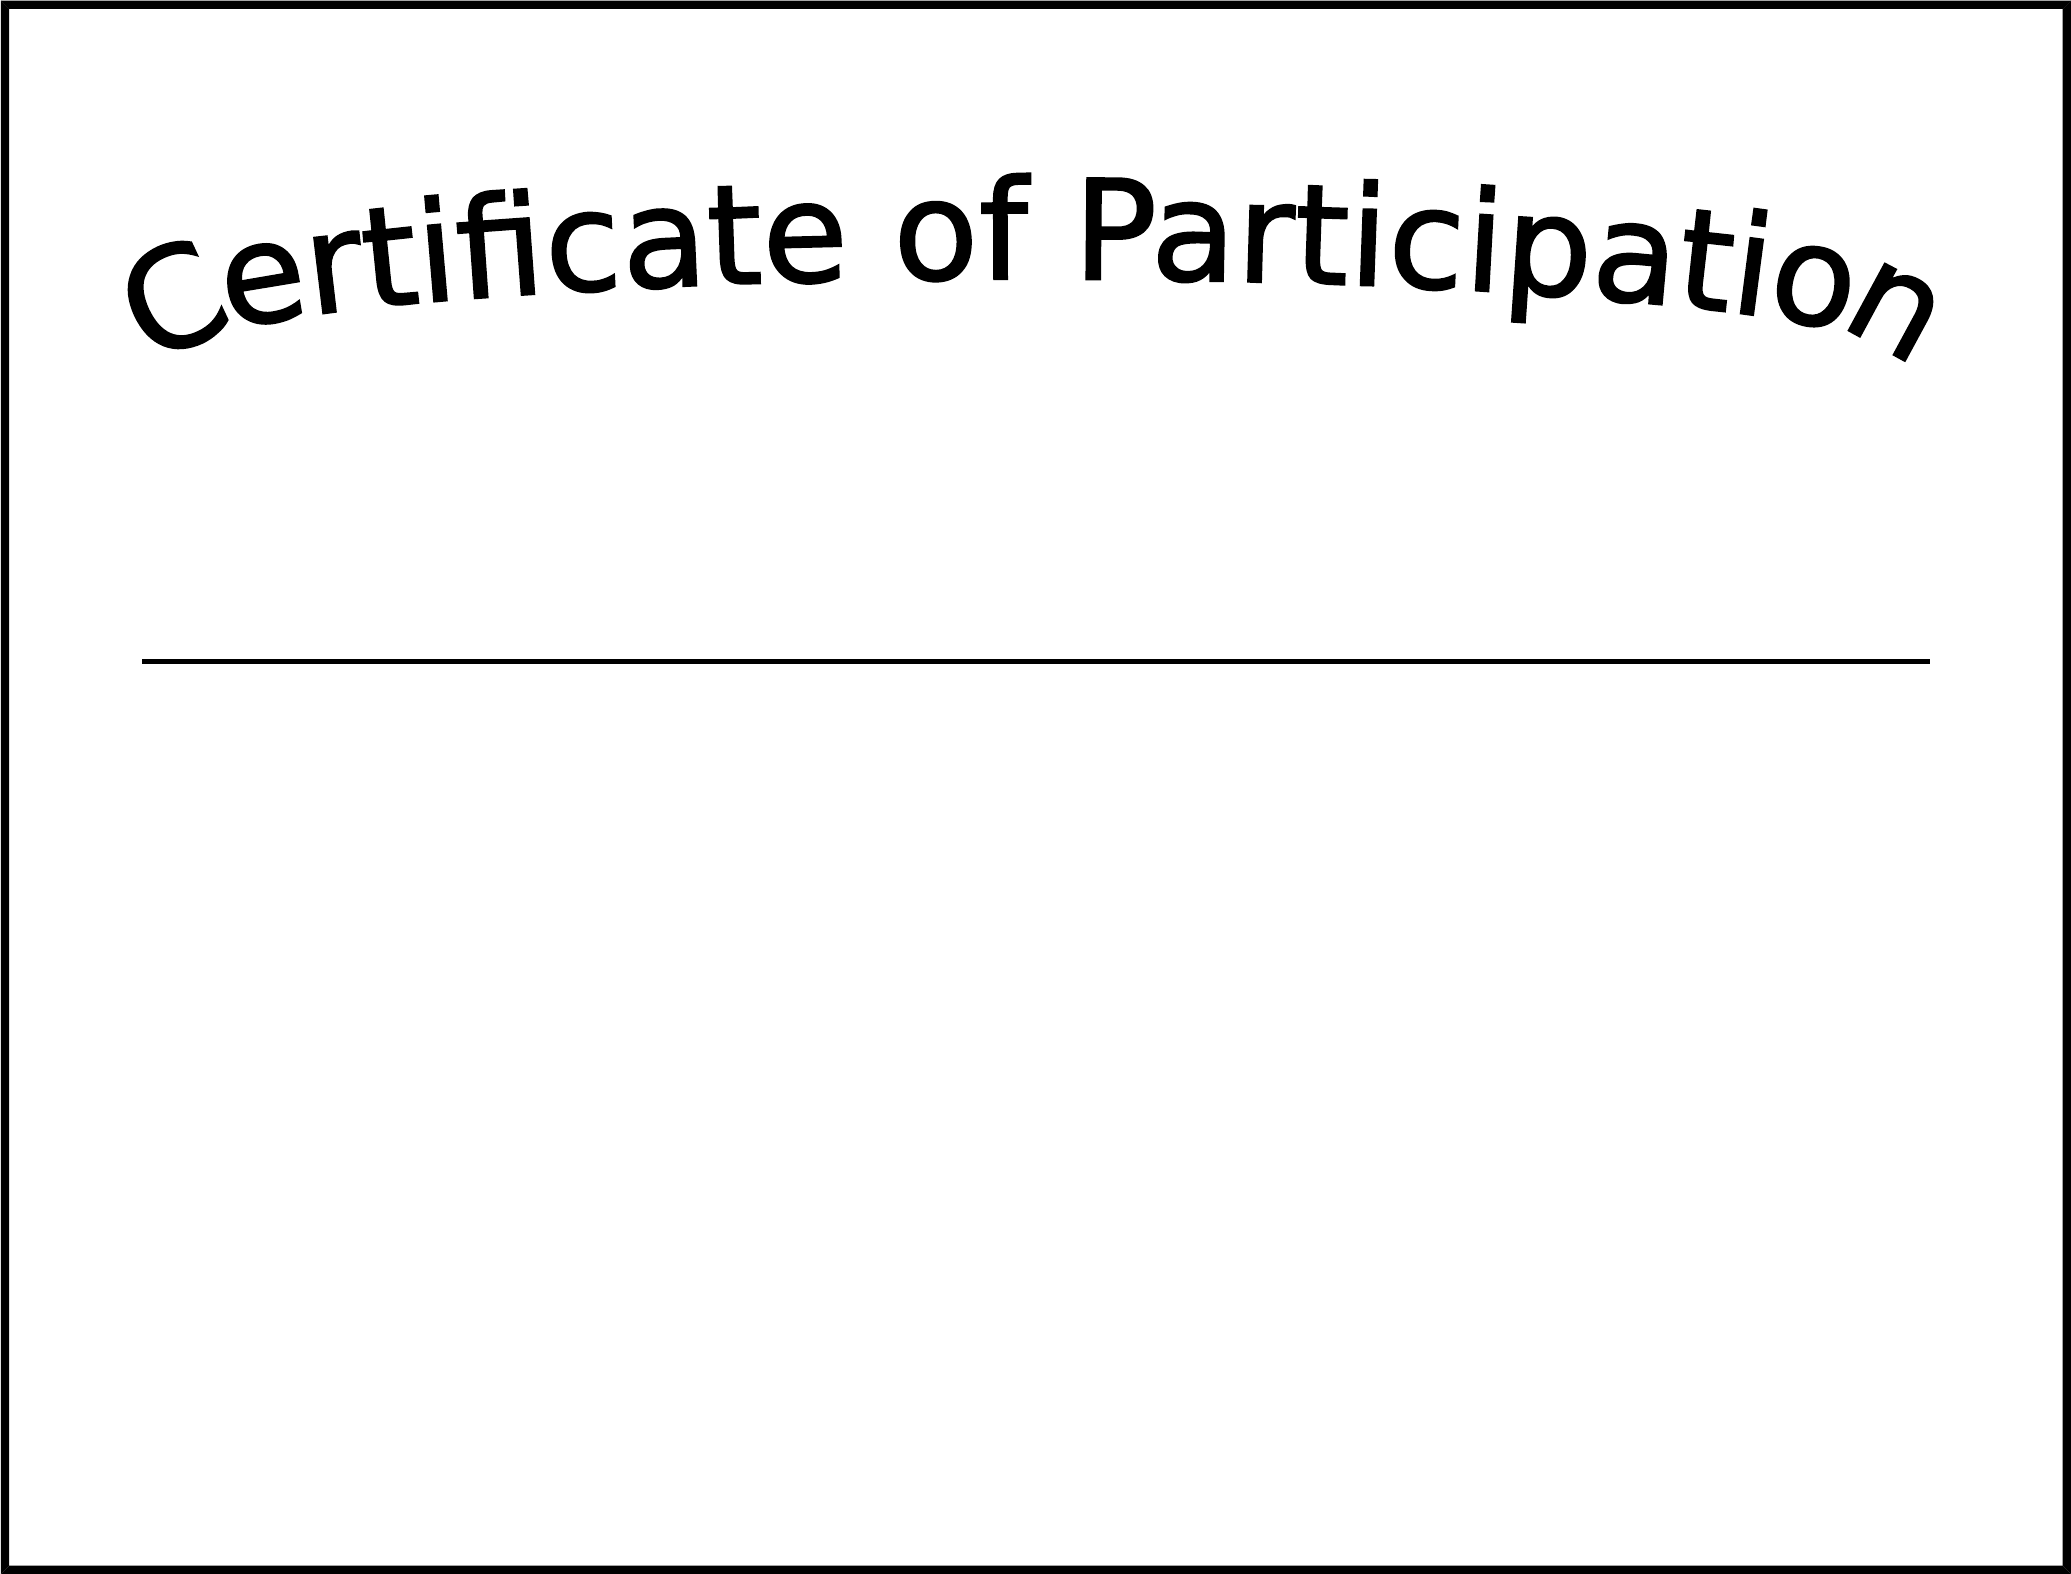 Simple participation certificate template free download for Certification of participation free template